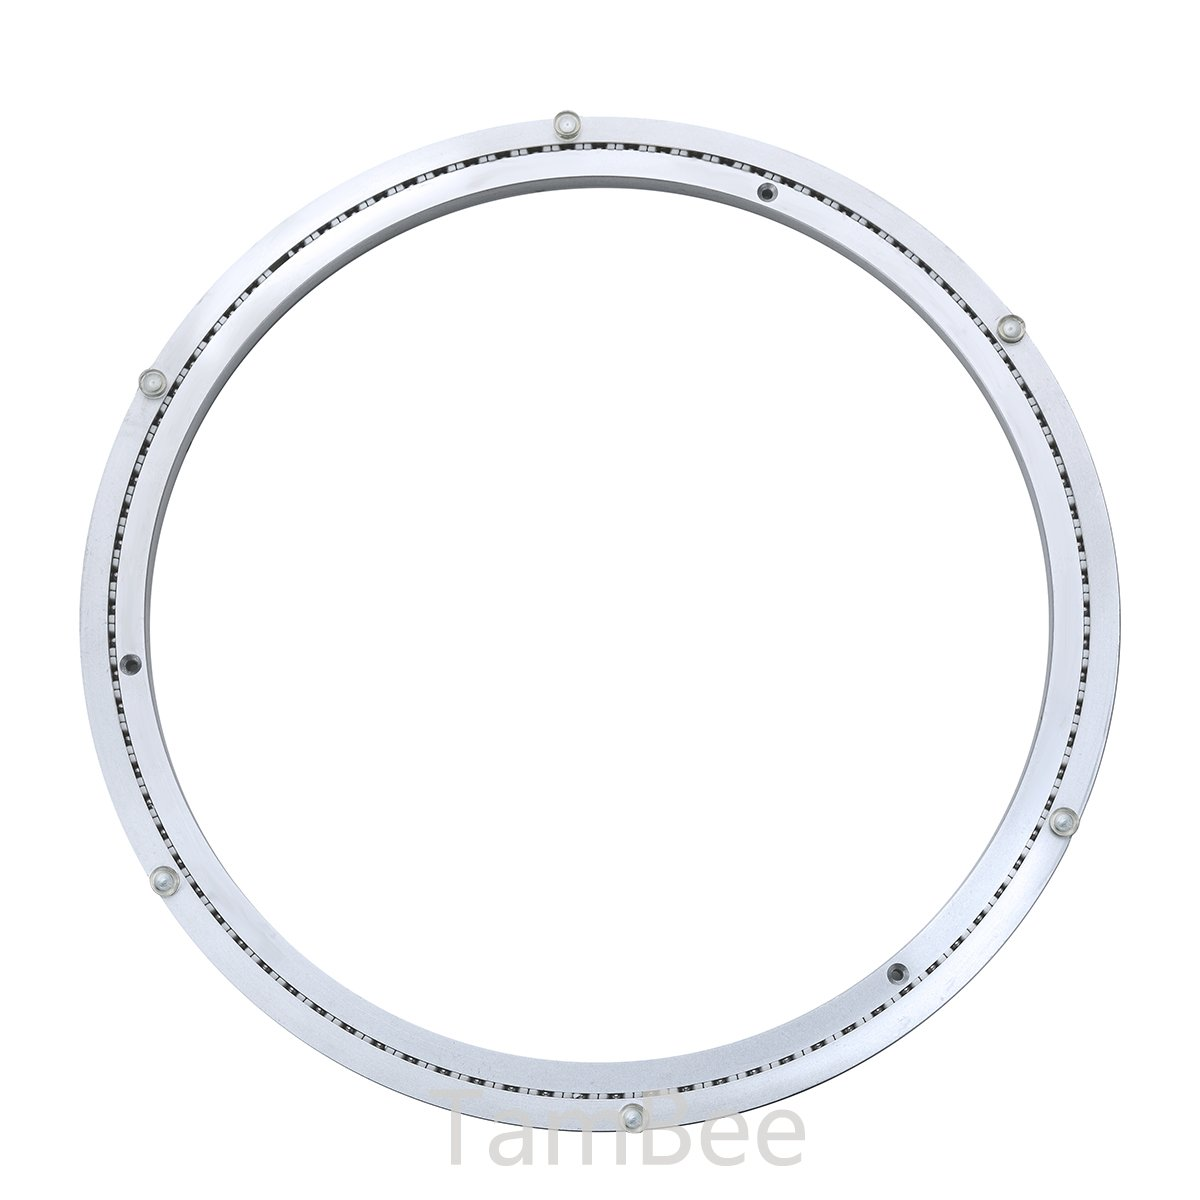 TamBee Heavy-Duty Mute 20 Inch Aluminum Lazy Susan Bearing Turntable Ring Swivel Plate Hardware for Heavy Loads by TamBee